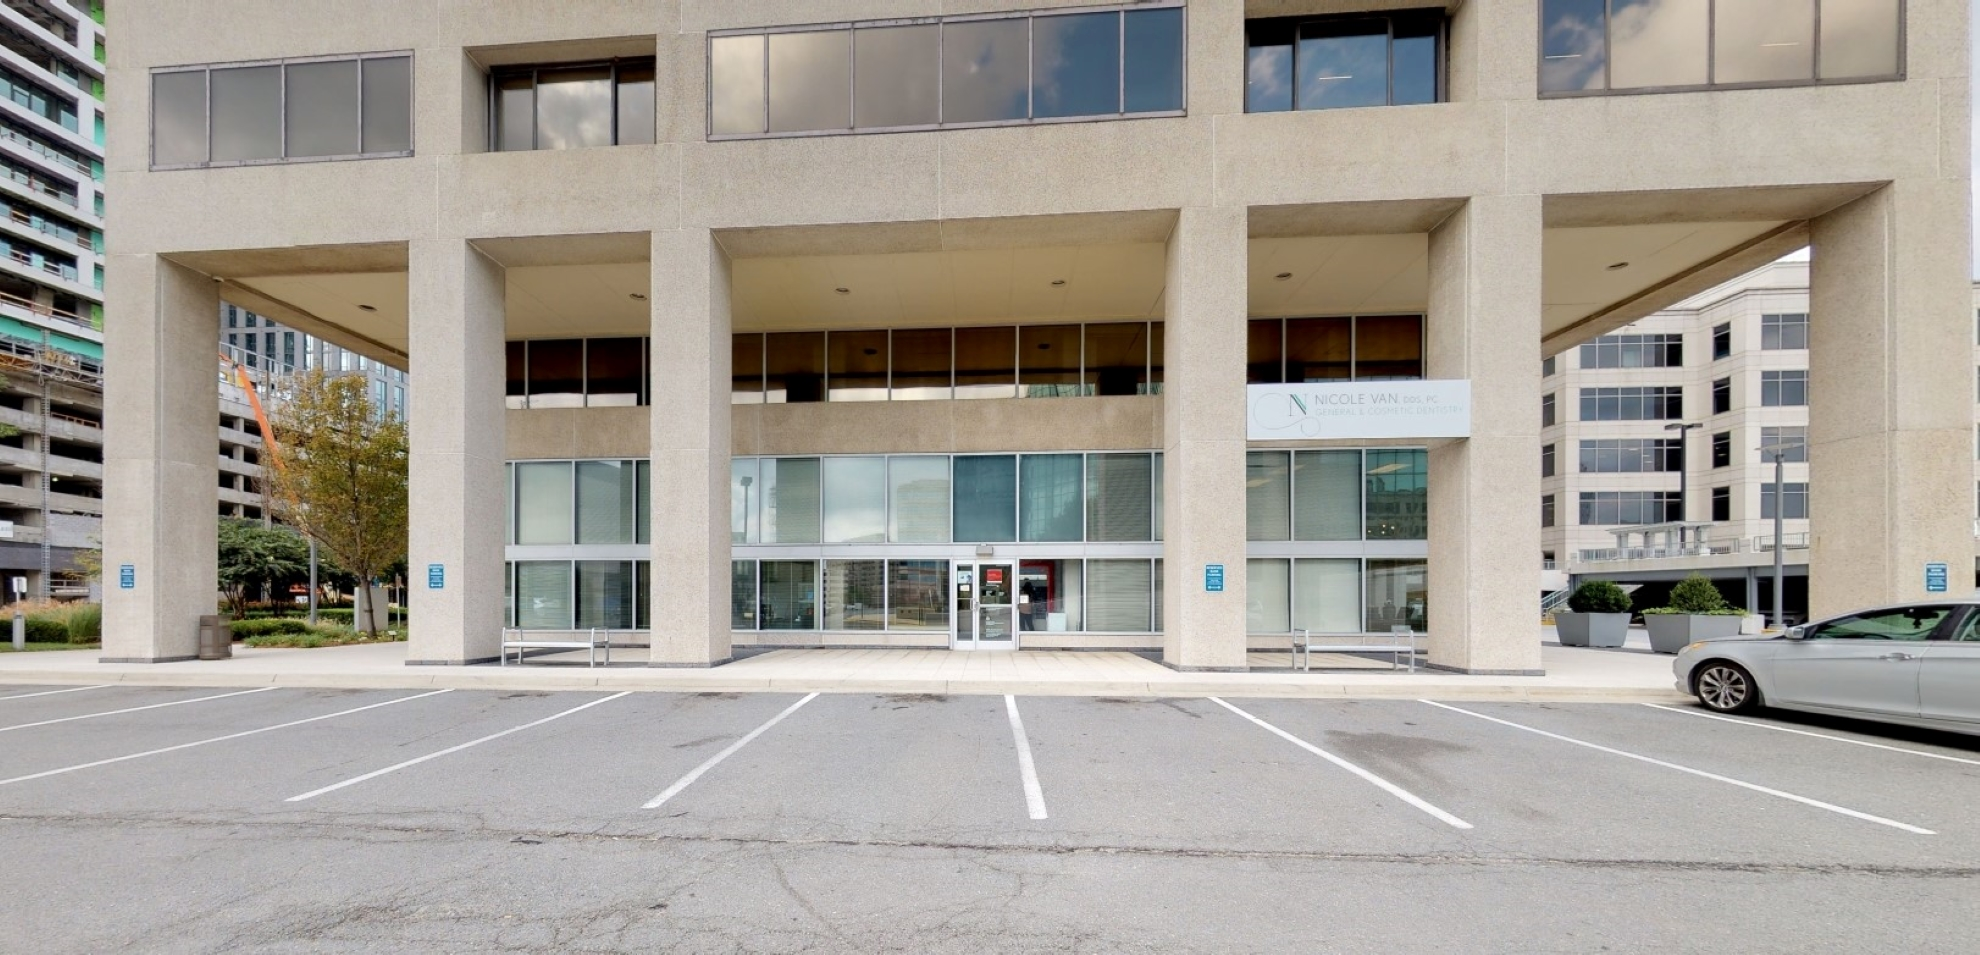 Bank of America financial center with walk-up ATM | 8300 Greensboro Dr STE L3, McLean, VA 22102